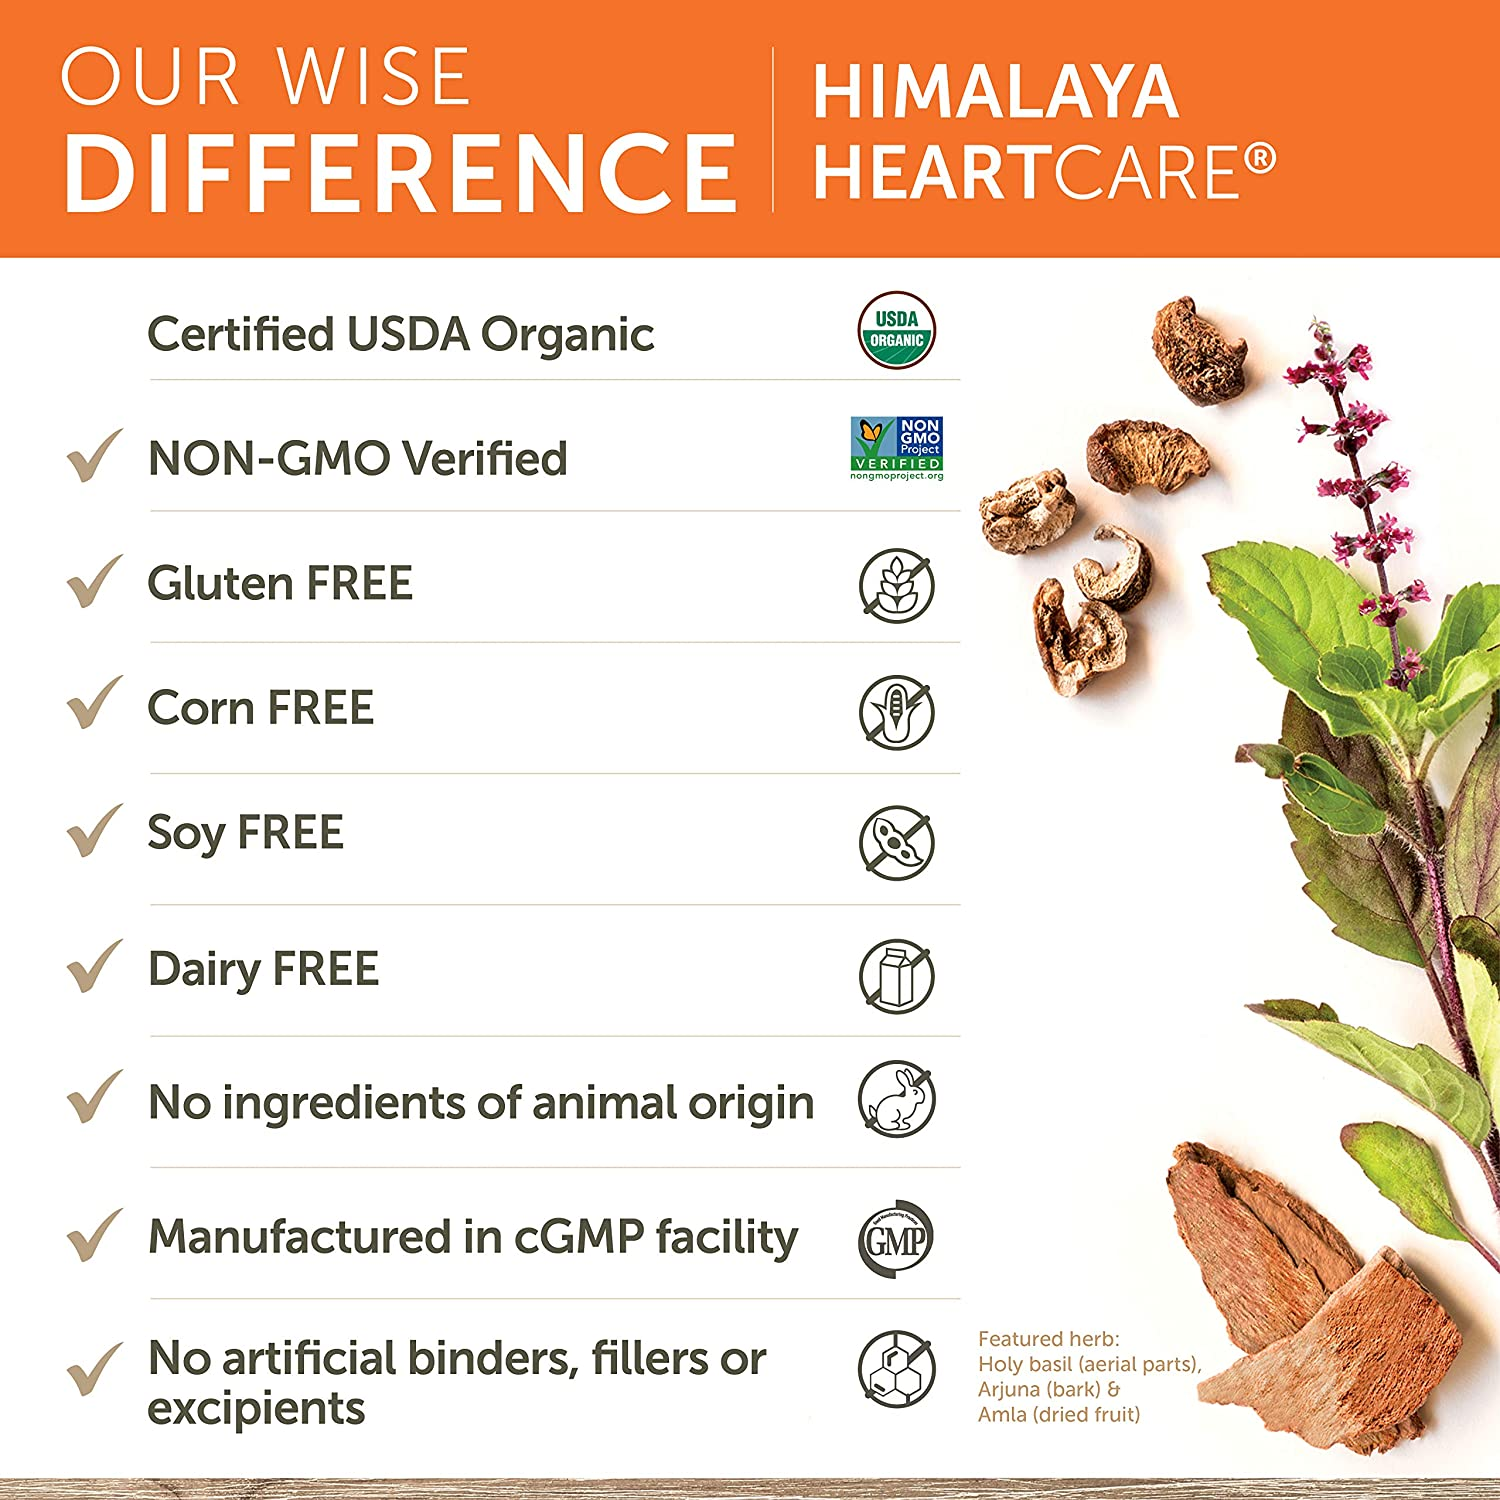 Amazon.com: Himalaya Herbal Healthcare HeartCare/Abana ...